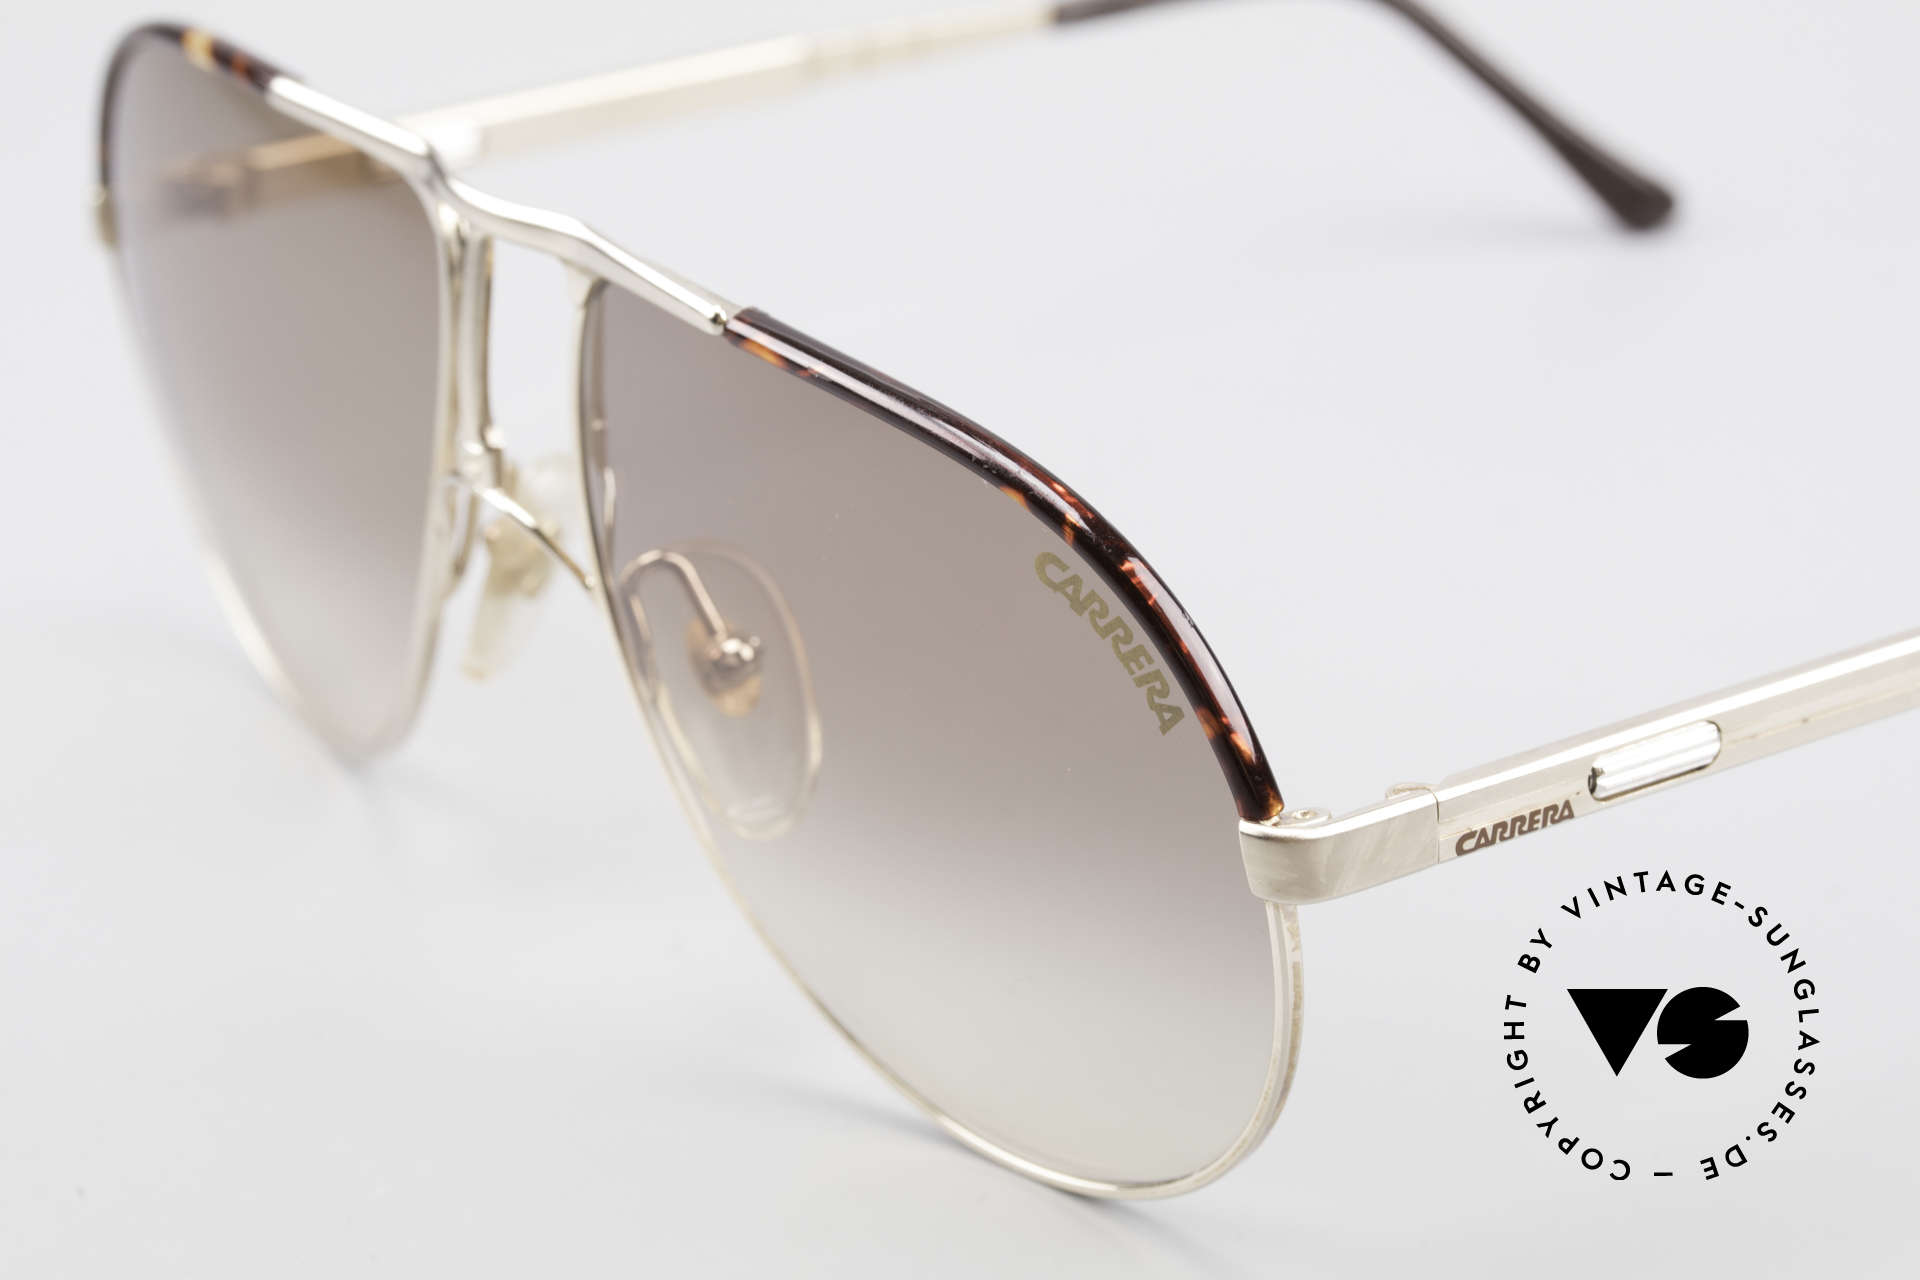 Carrera 5306 Brad Pitt Vintage Sunglasses, hybrid between functionality, quality & luxury lifestyle, Made for Men and Women